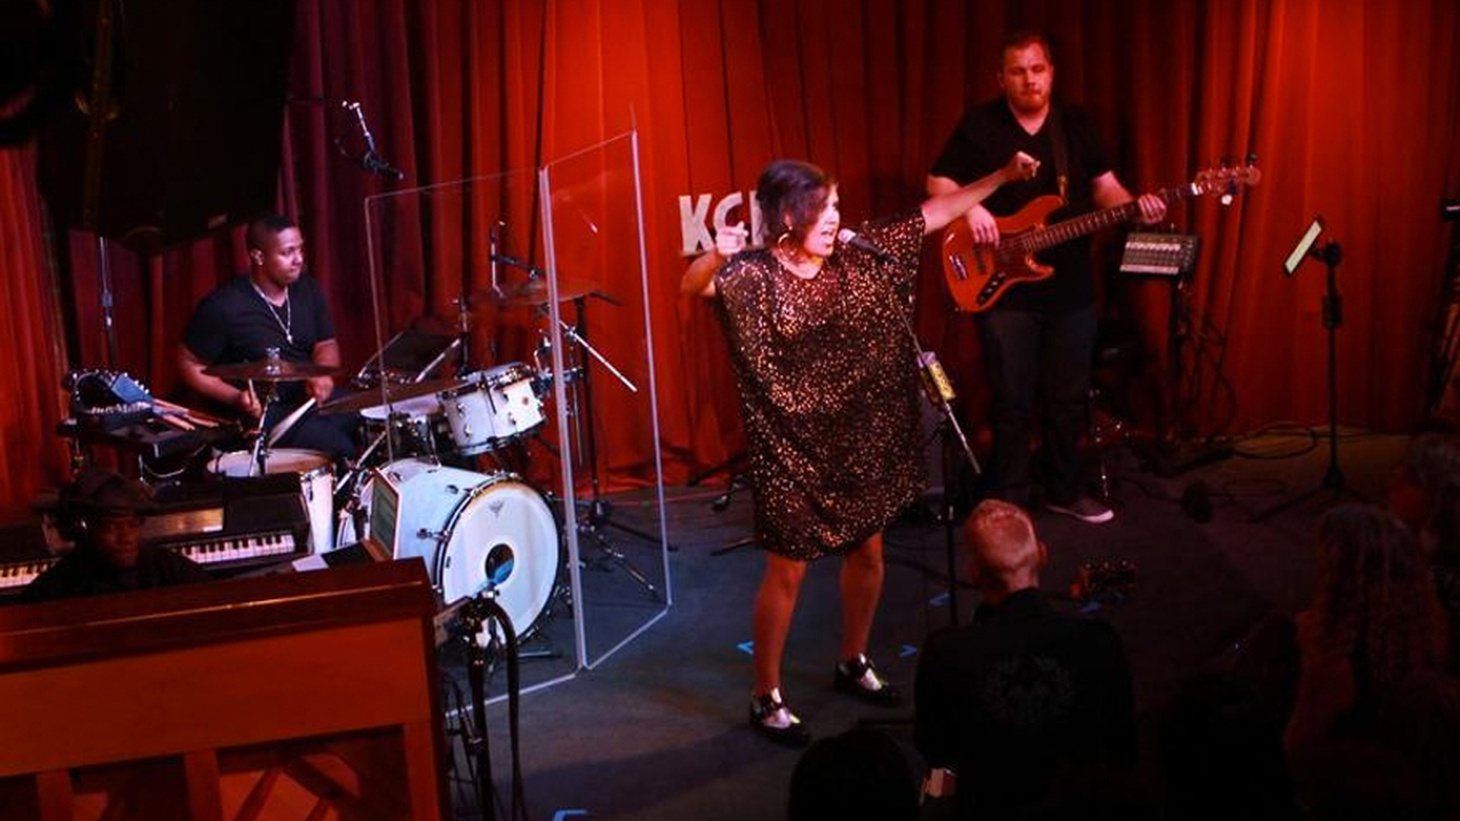 Seductive electro-soul outfit Quadron charmed KCRW supporters at a recent live session at KCRW's Apogee Sessions.